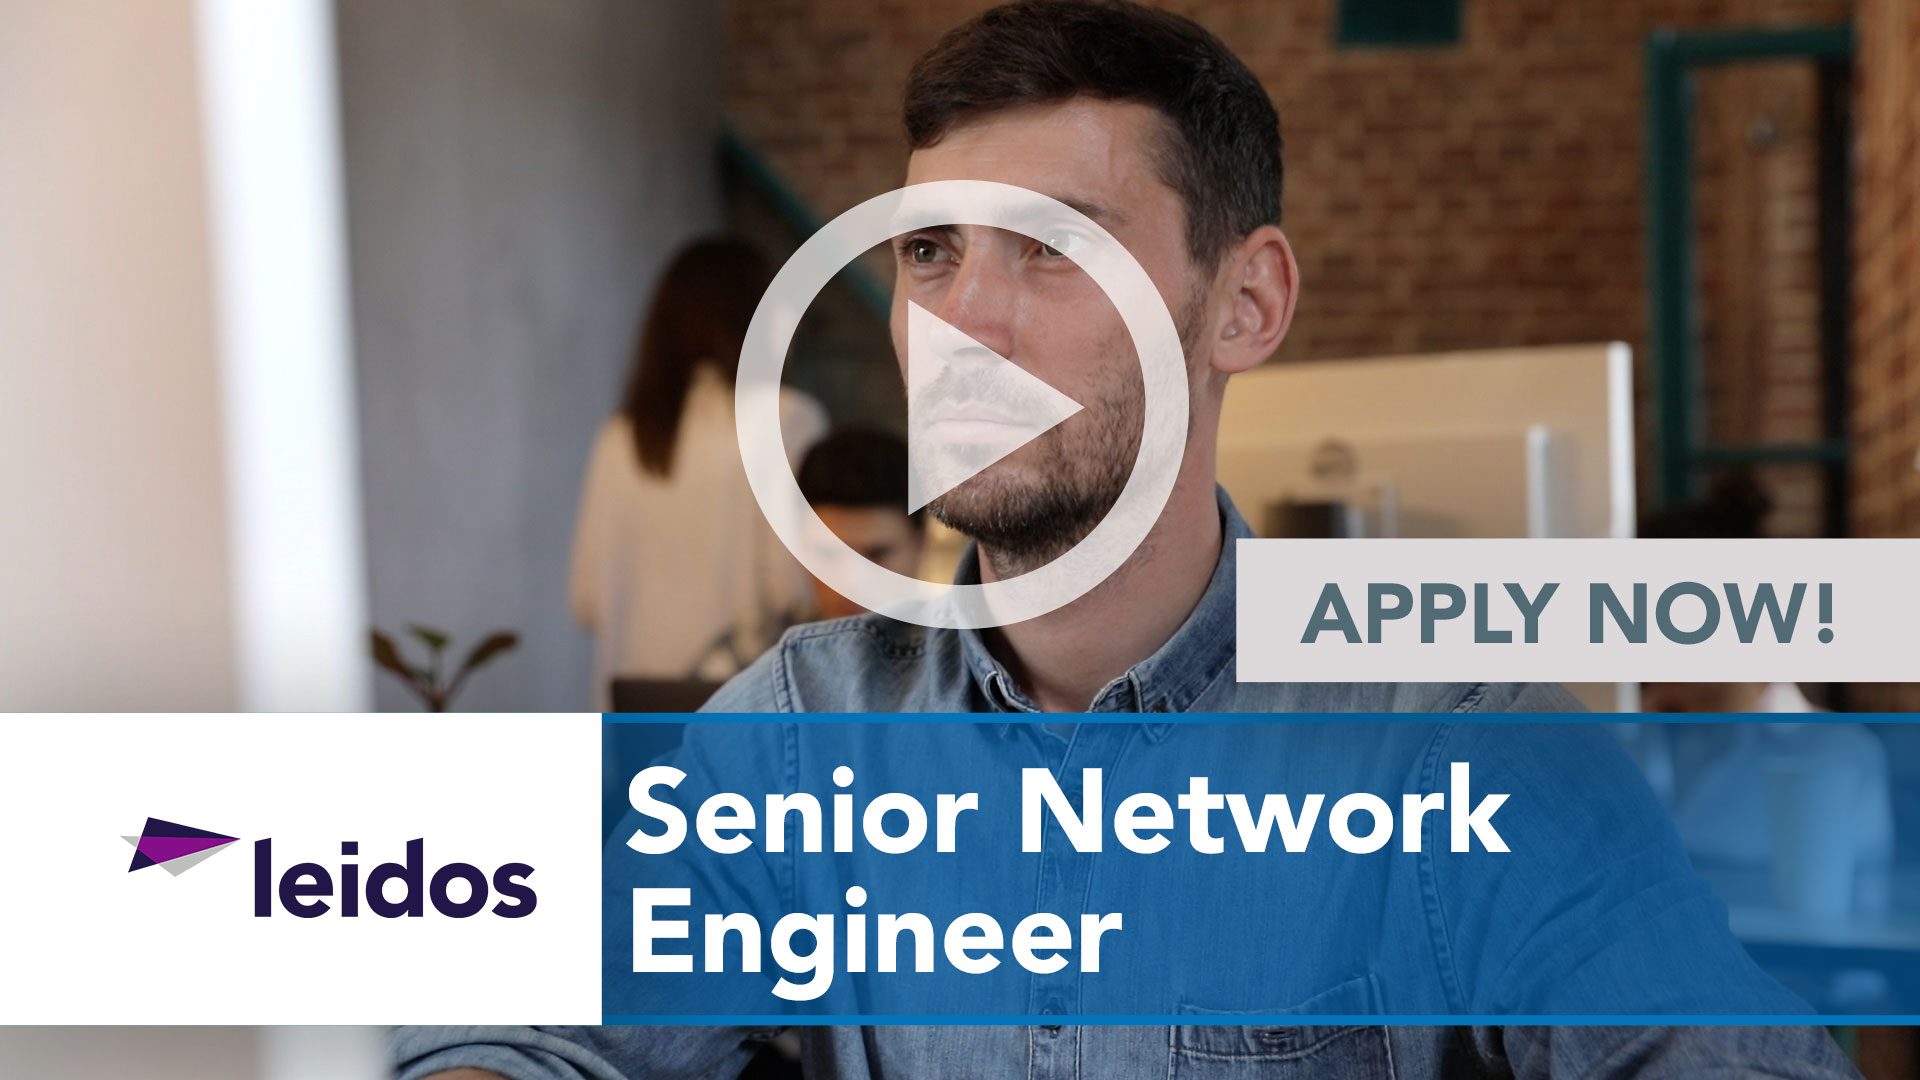 Watch our careers video for available job opening Senior Network Engineer in National Capital Region with